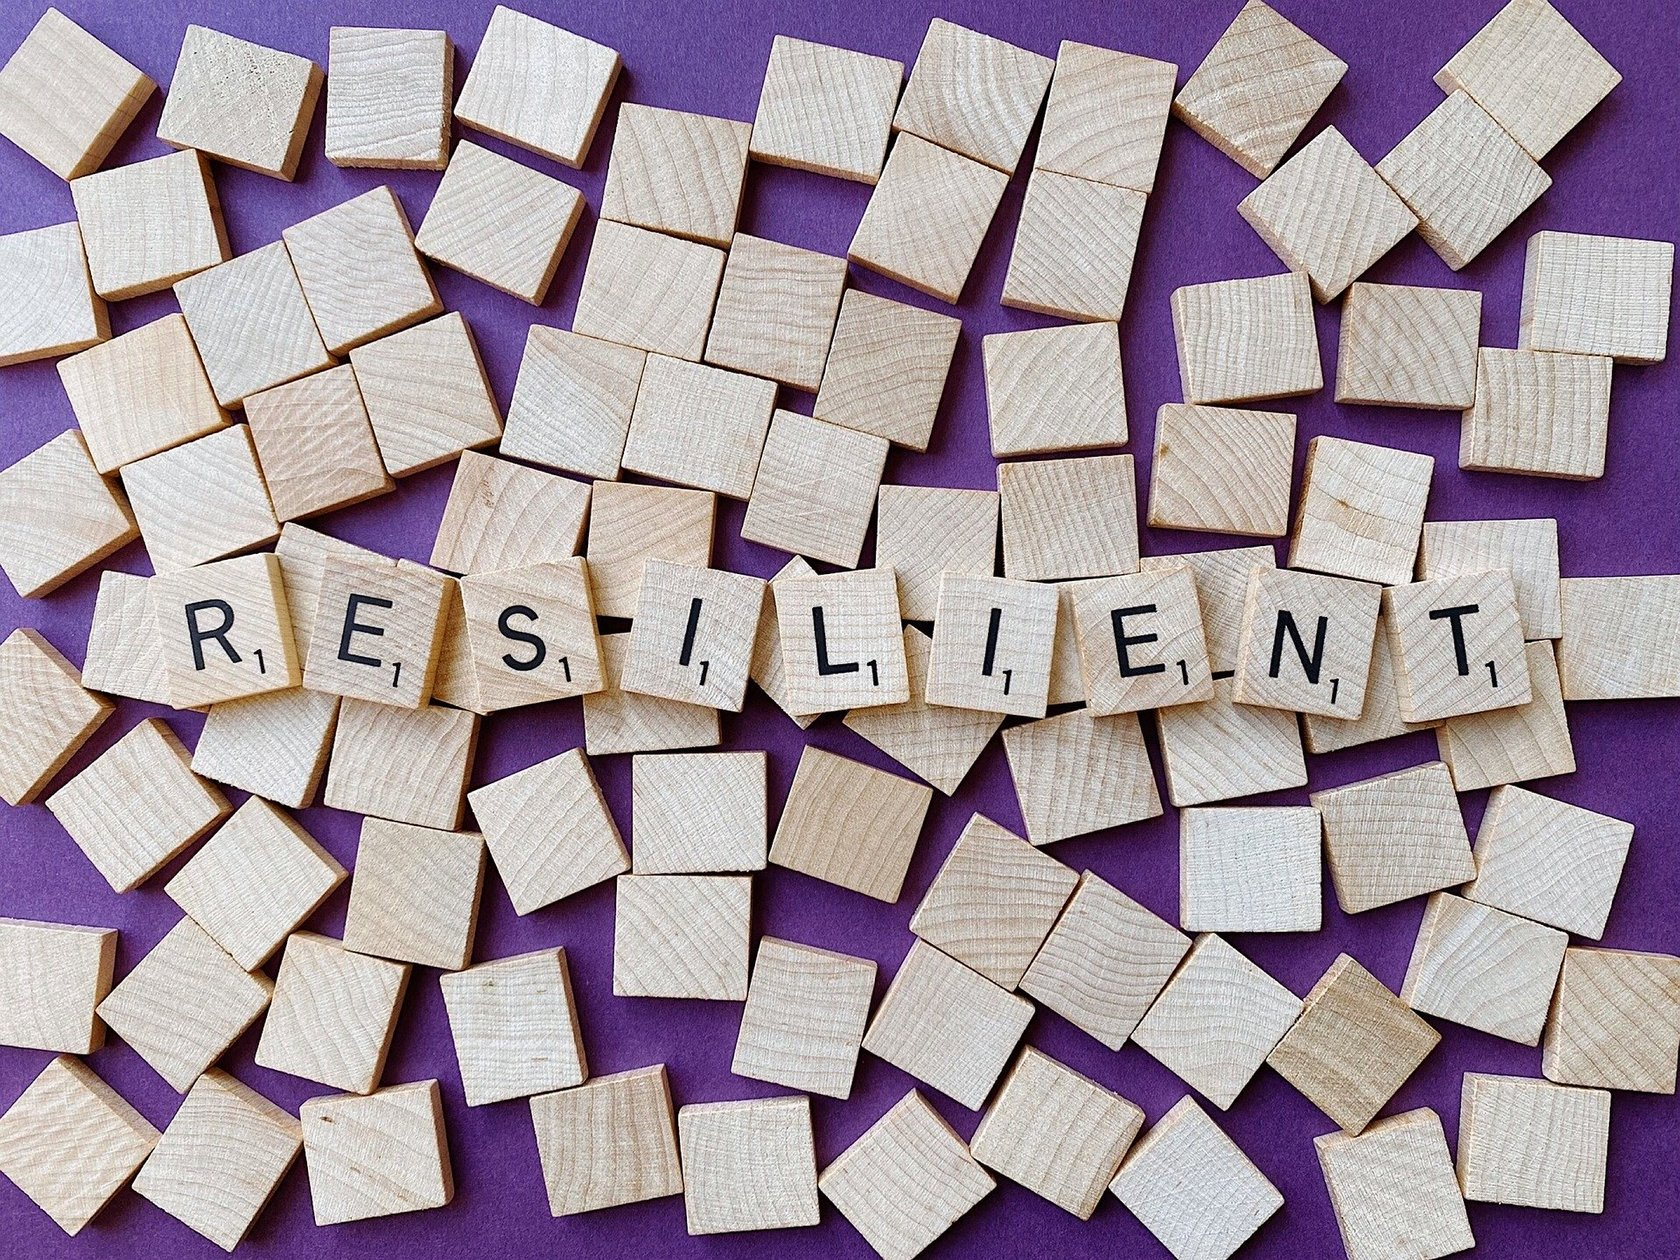 Resilience Resources Weekly: Optimism